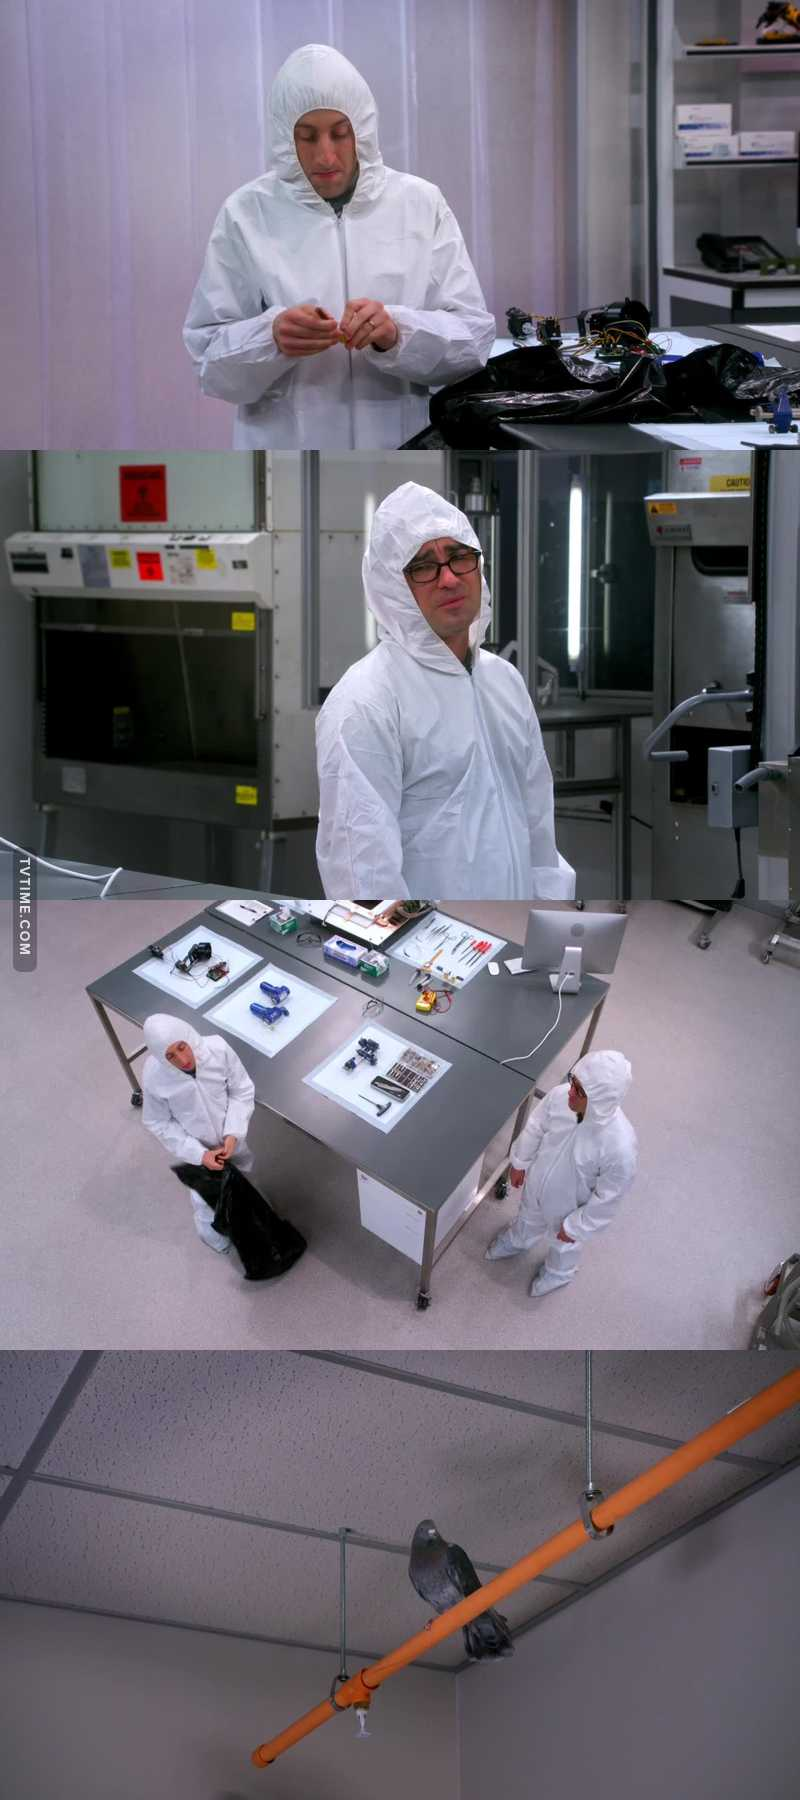 Is this Breaking Bad?